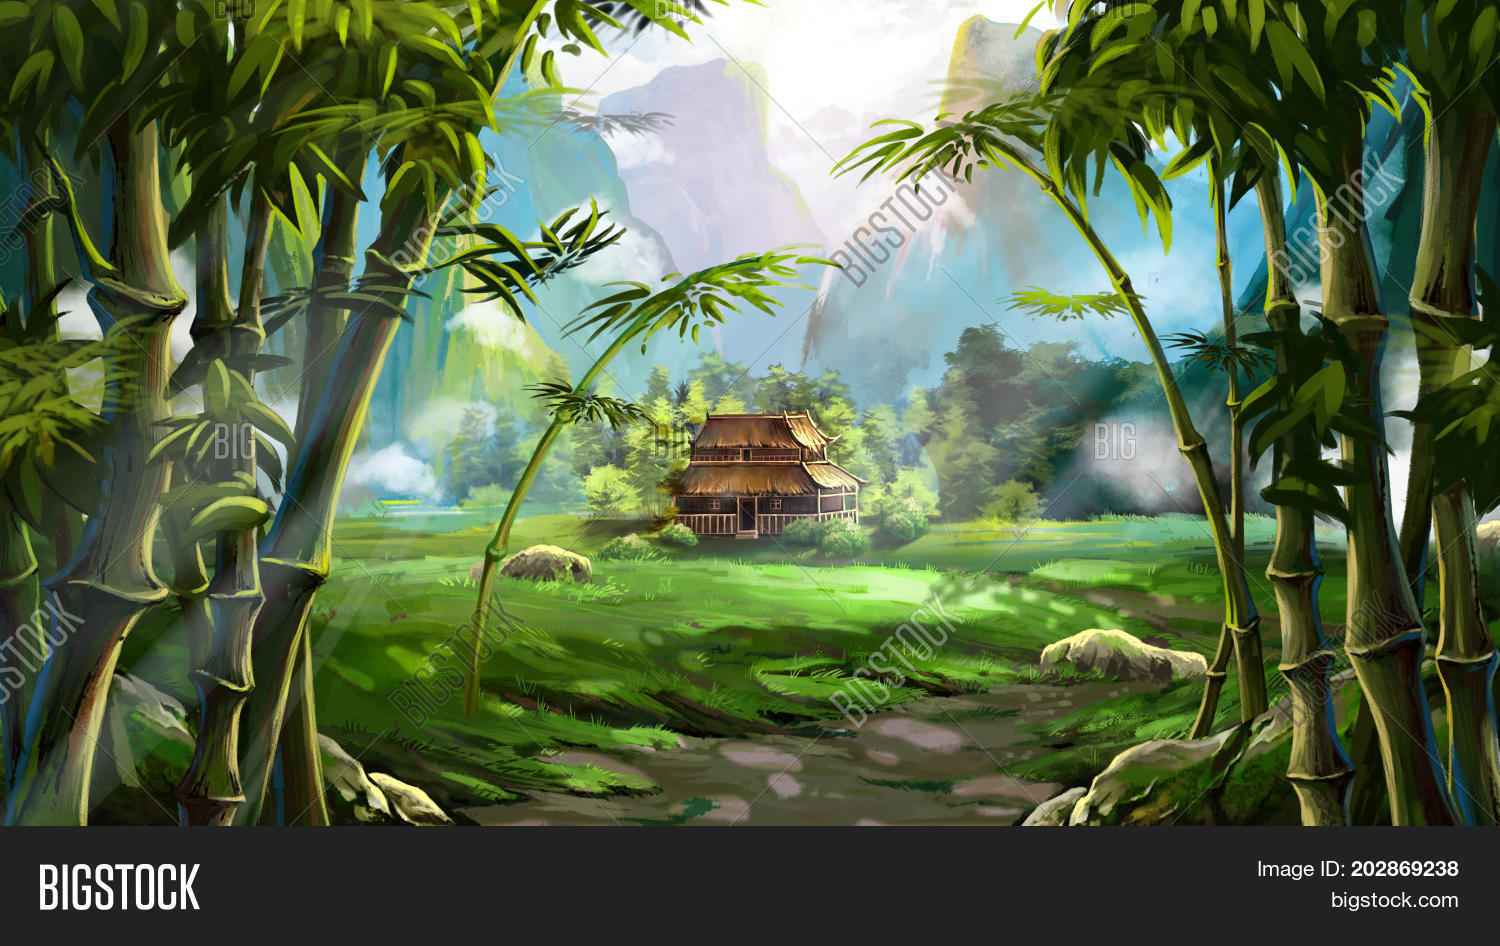 Bamboo Forest House Image Photo Free Trial Bigstock